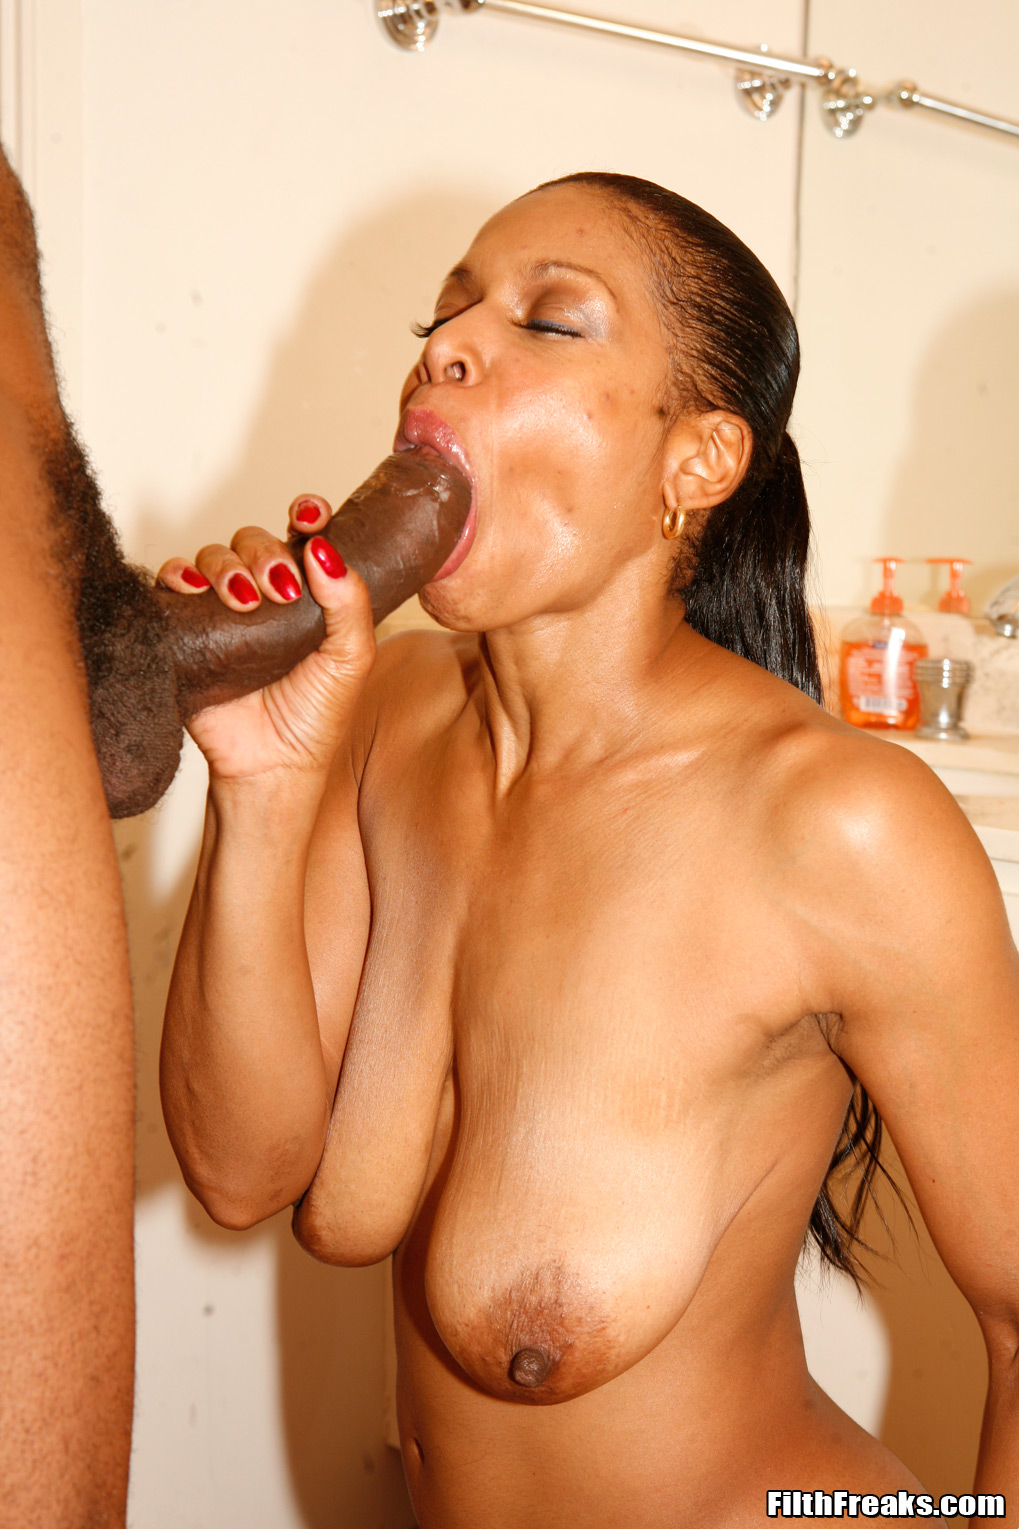 You tell Ebony mature black milf porn pics have faced